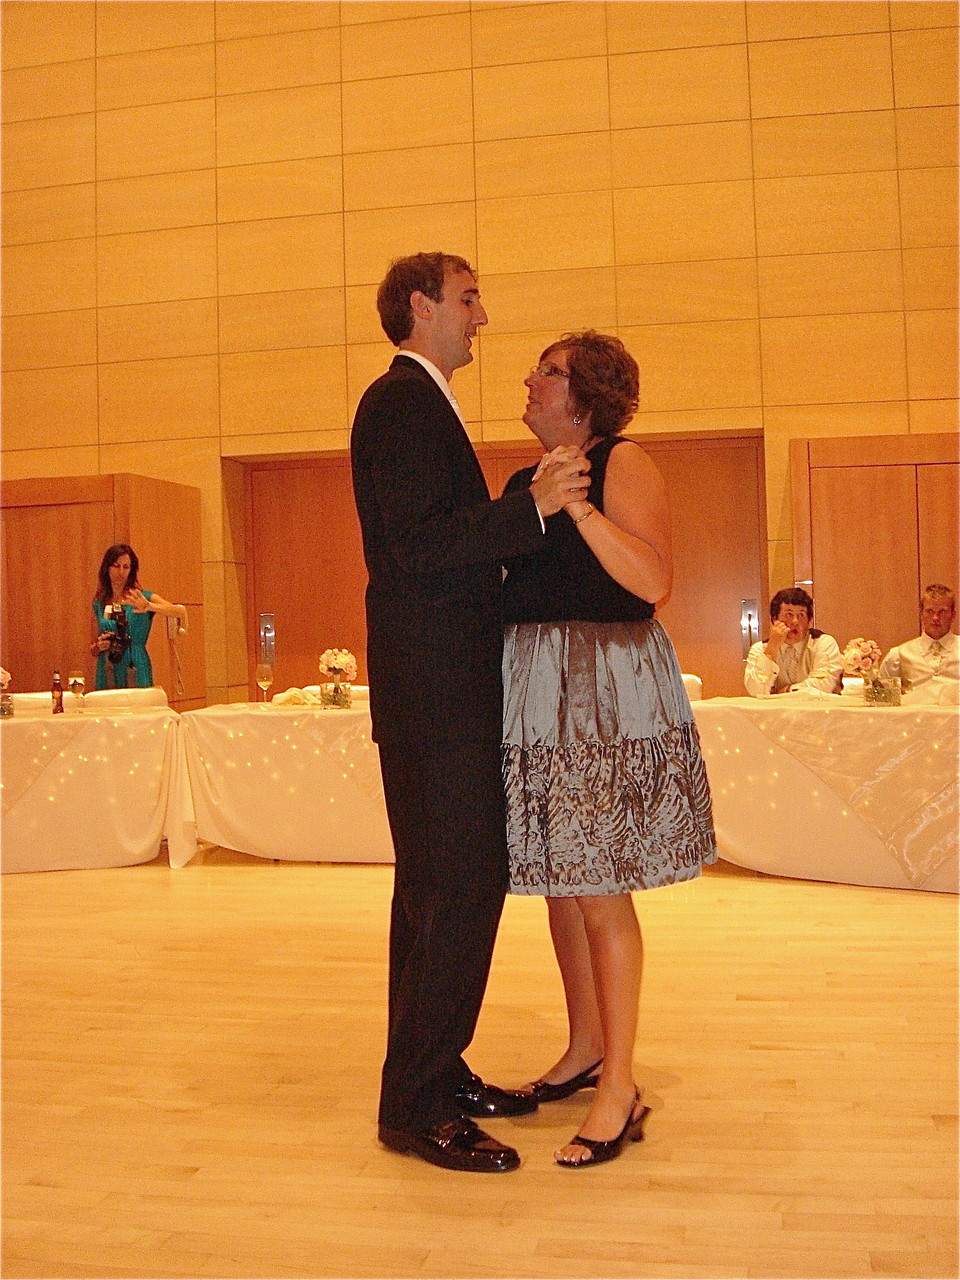 Jill dances with her son, Nick